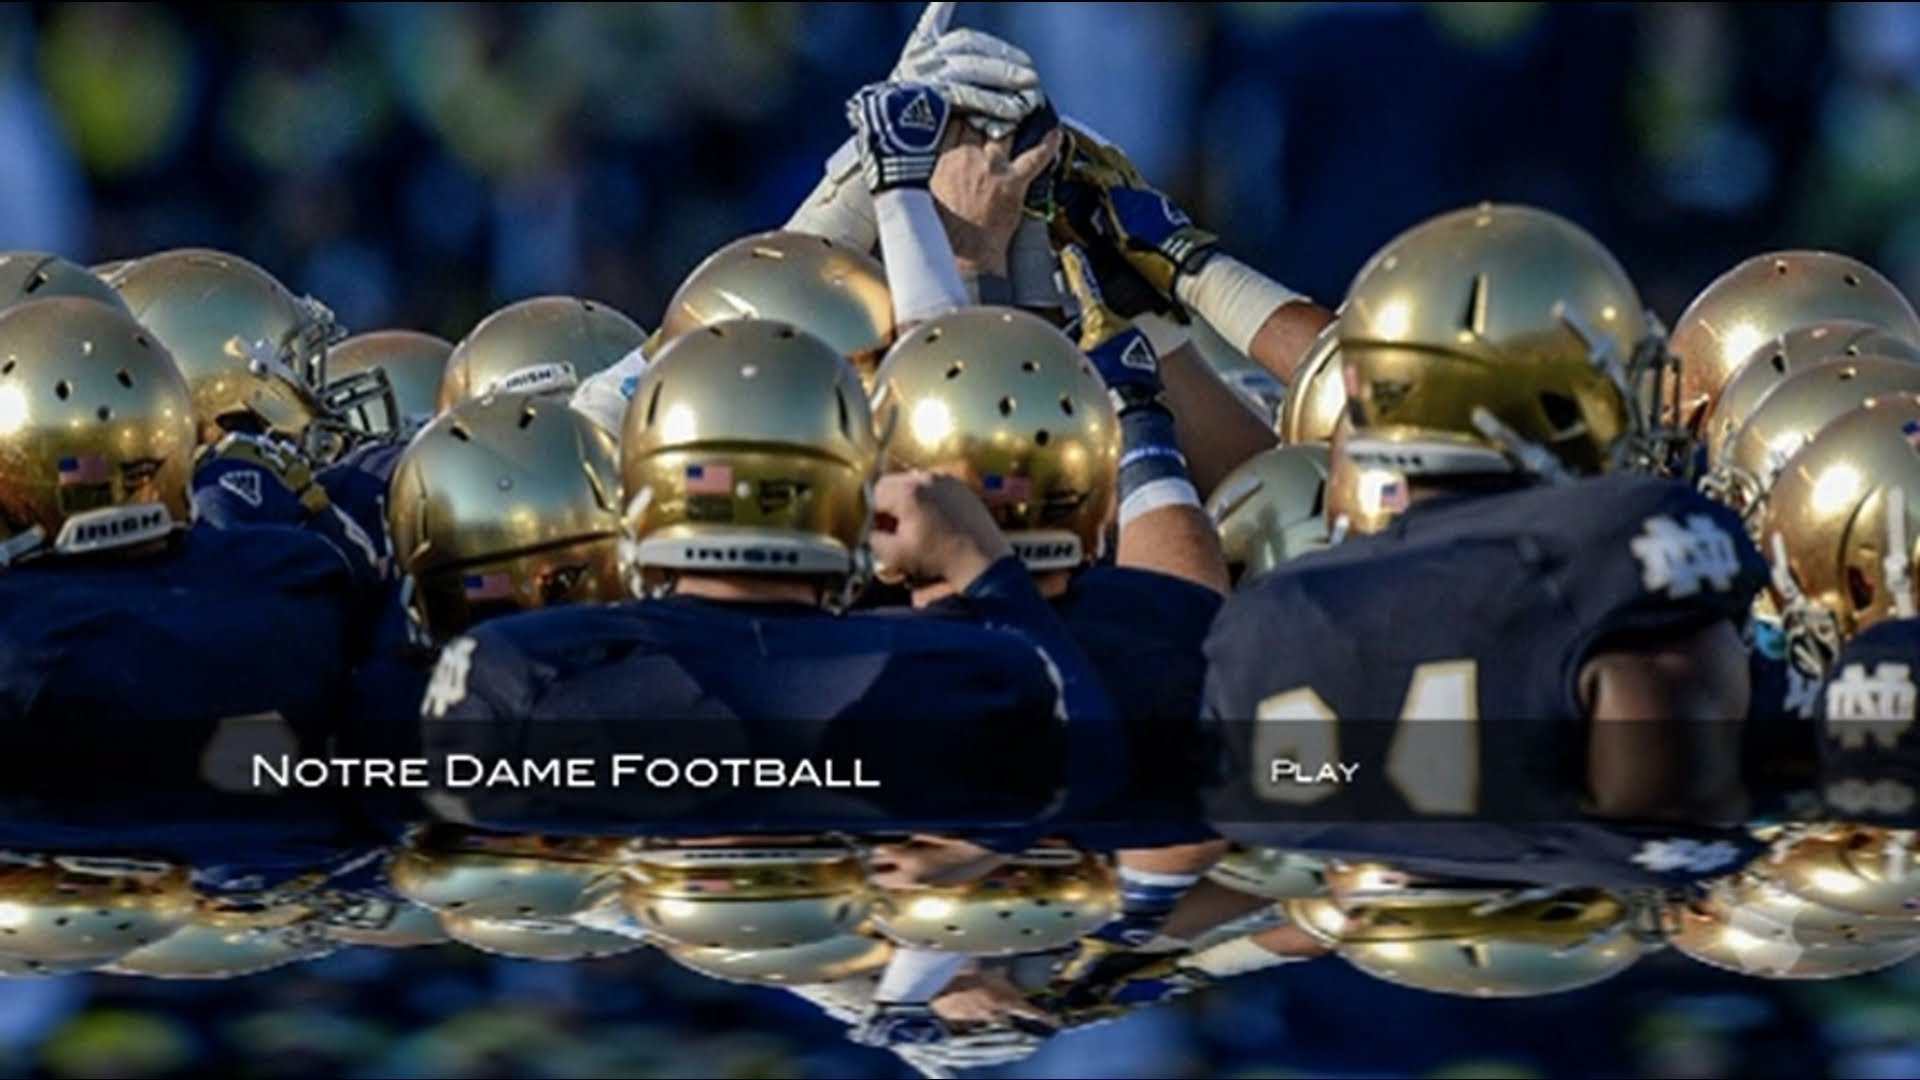 NOTRE DAME Fighting Irish college football wallpaper 1920x1080 1920x1080